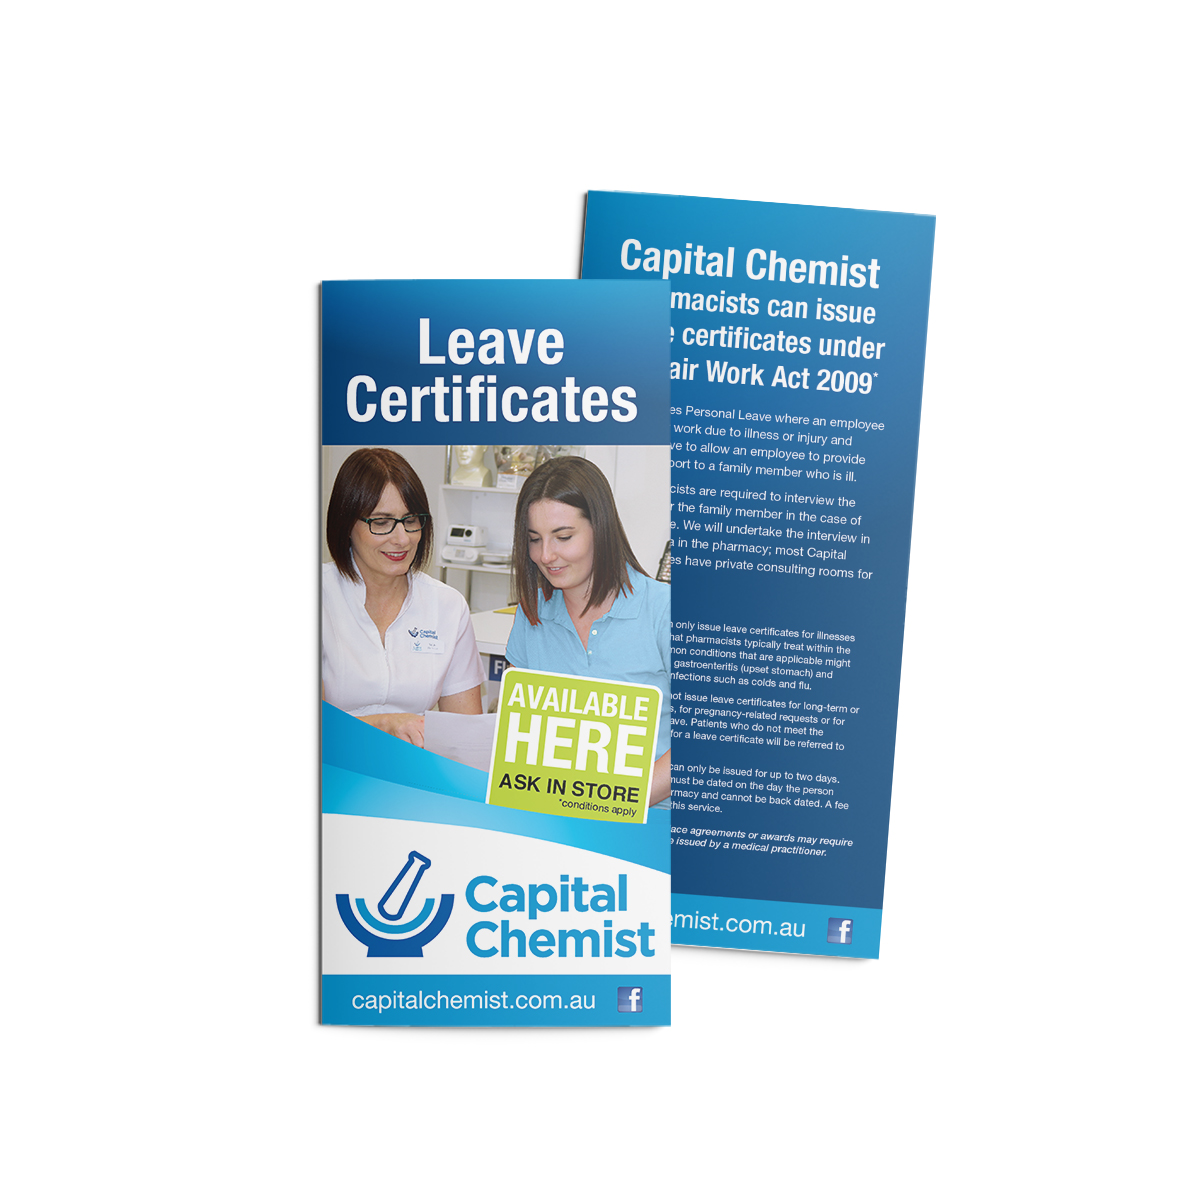 Capital Chemist Flyers